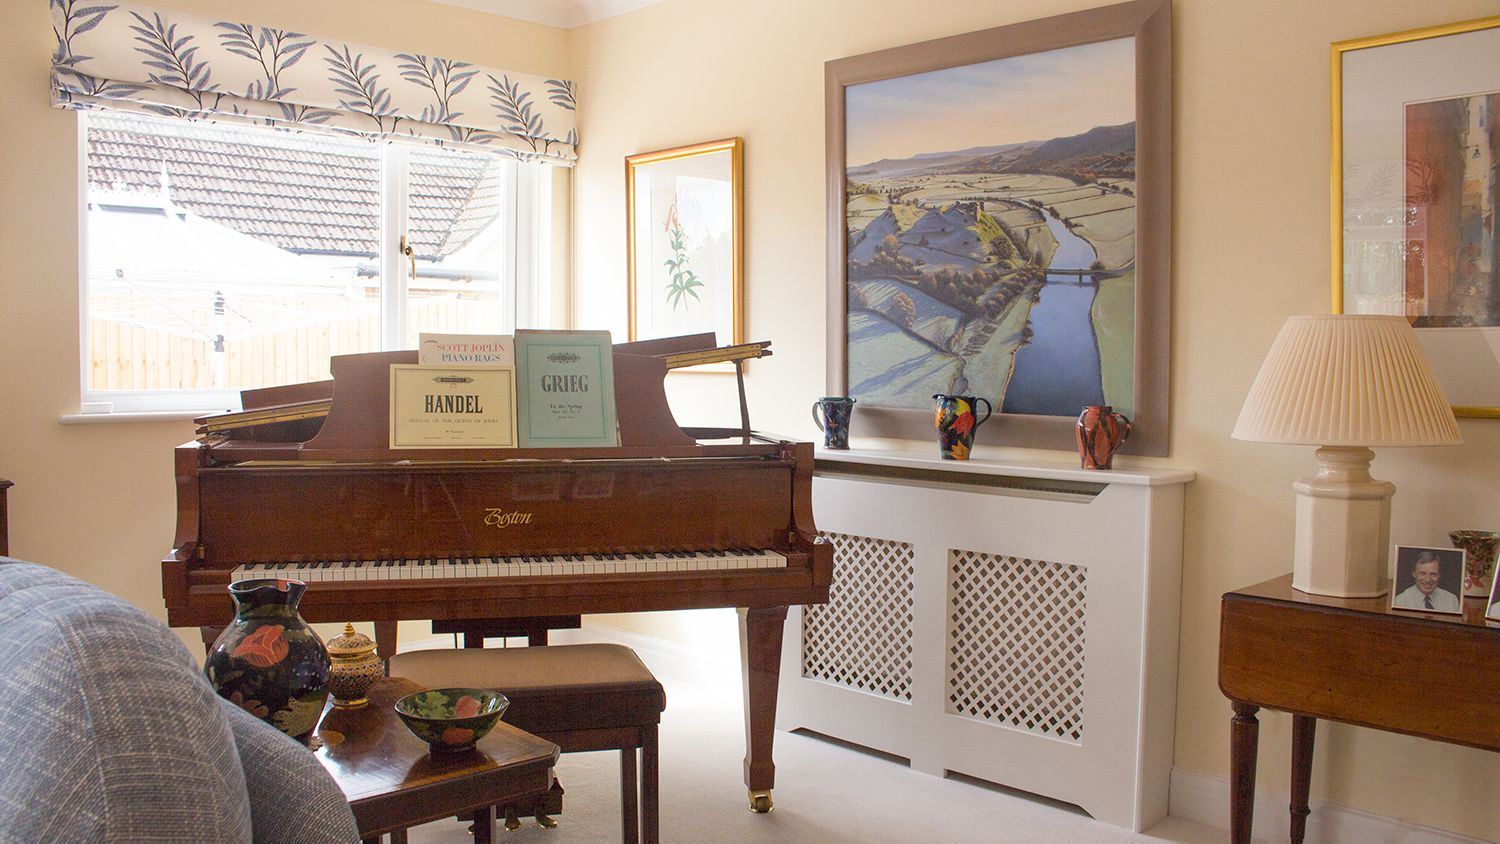 The new Roman blind, and the piano placed in front of the window.